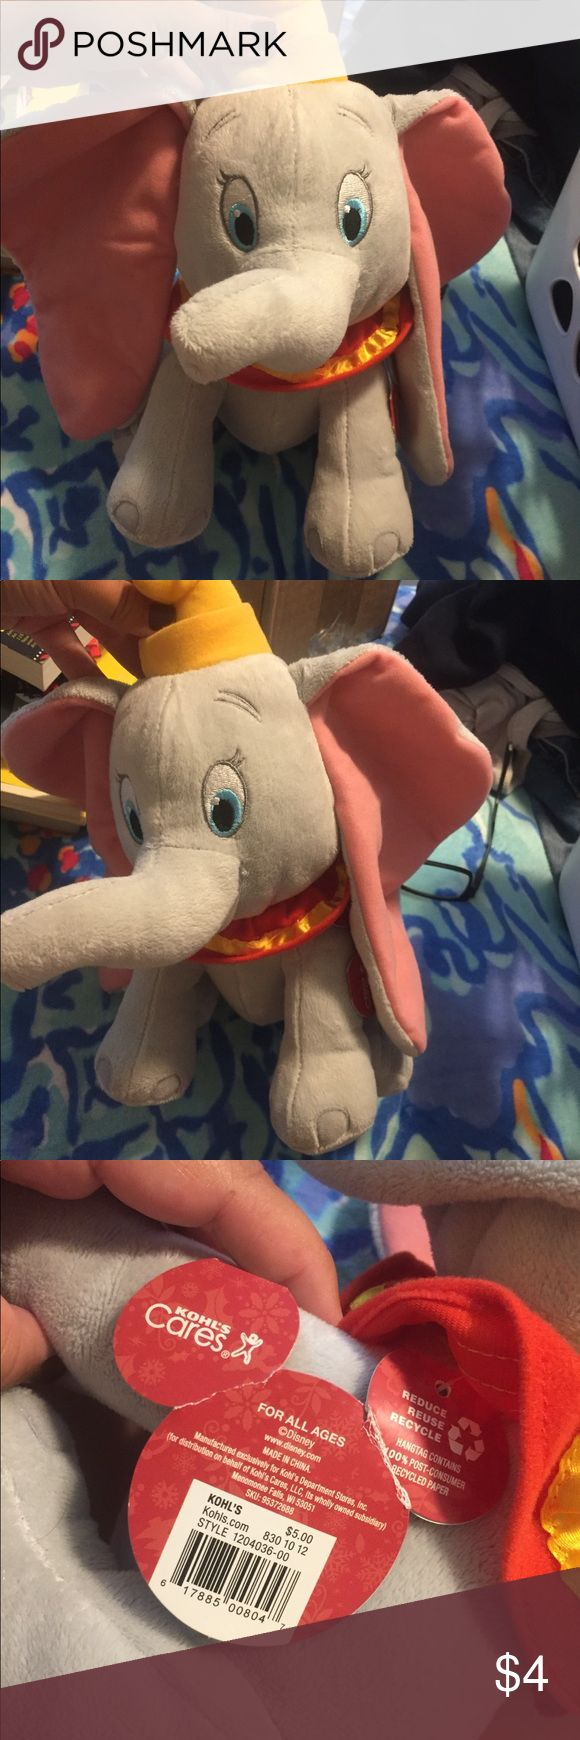 Disney Dumbo Plush Elephant Toy Great condition. Bought at Kohls. Disney Accessories